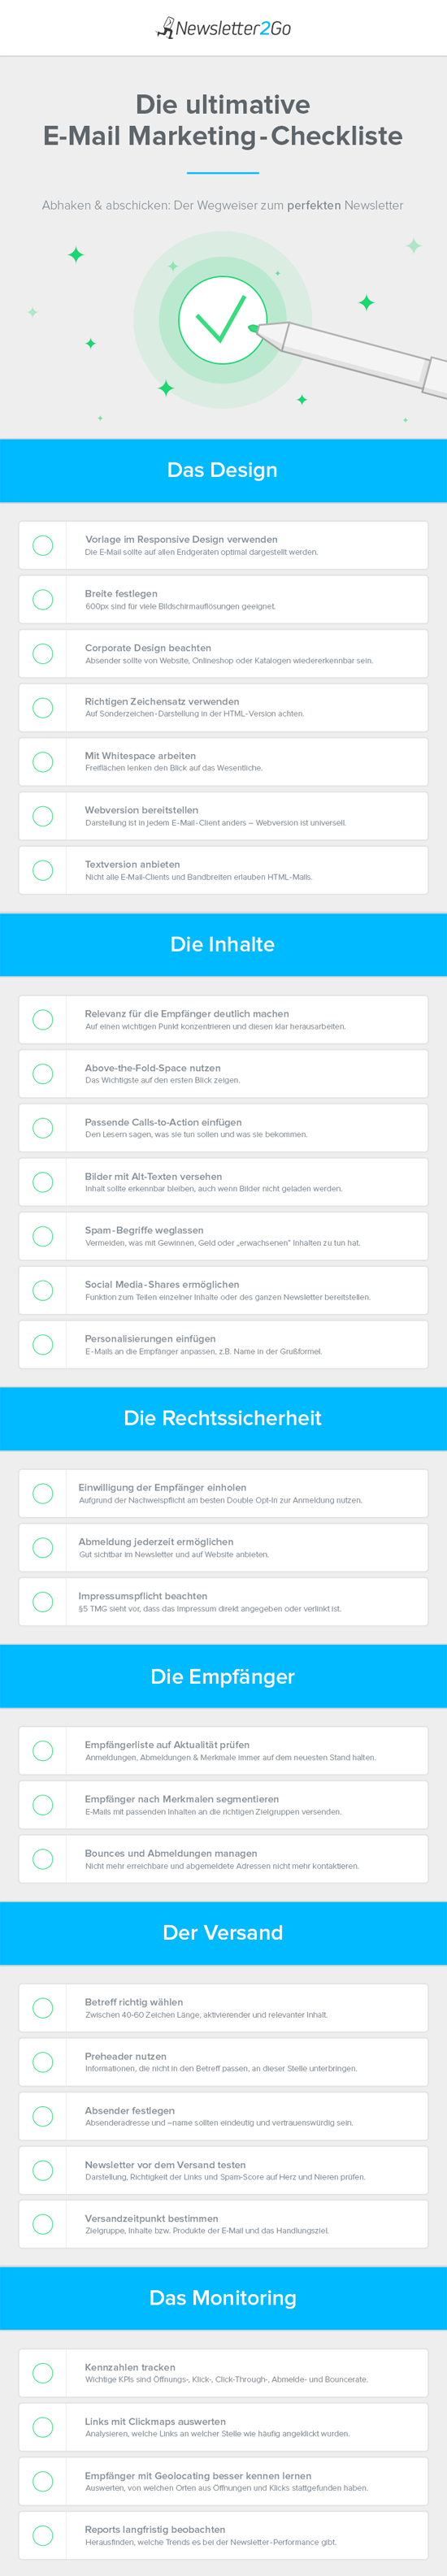 E-Mail Marketing Checkliste